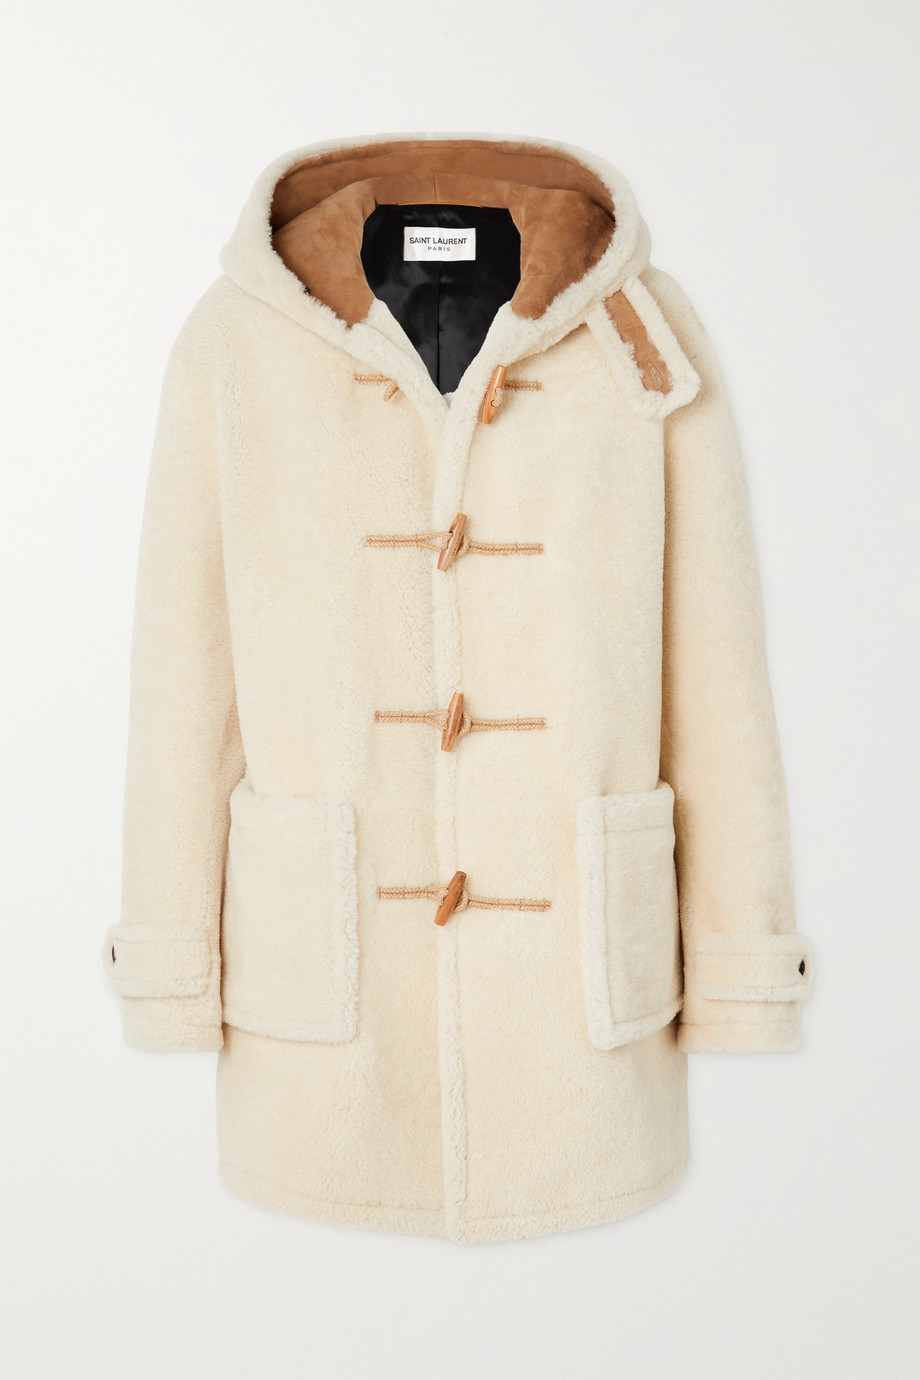 SAINT LAURENT Hooded shearling coat